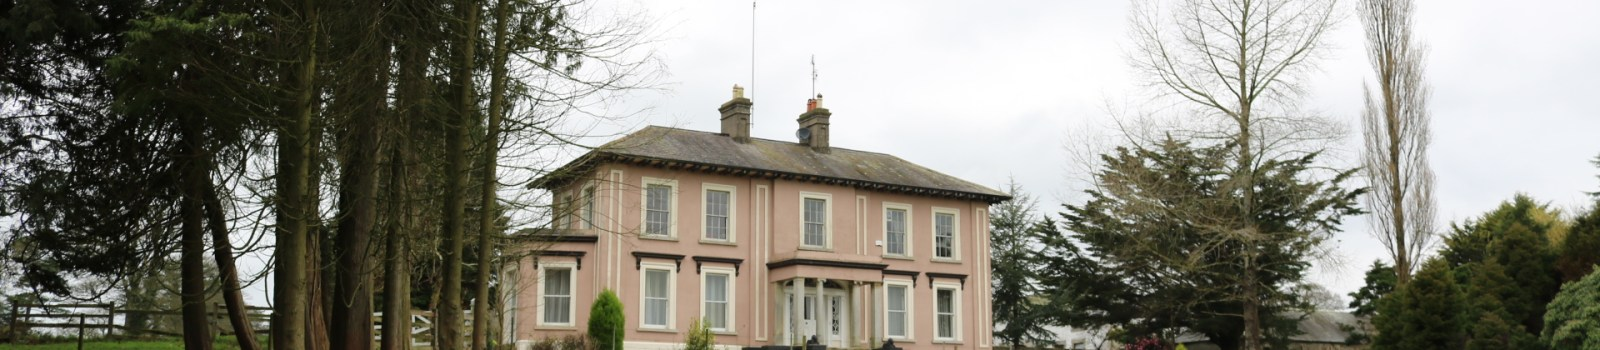 Borrmount House